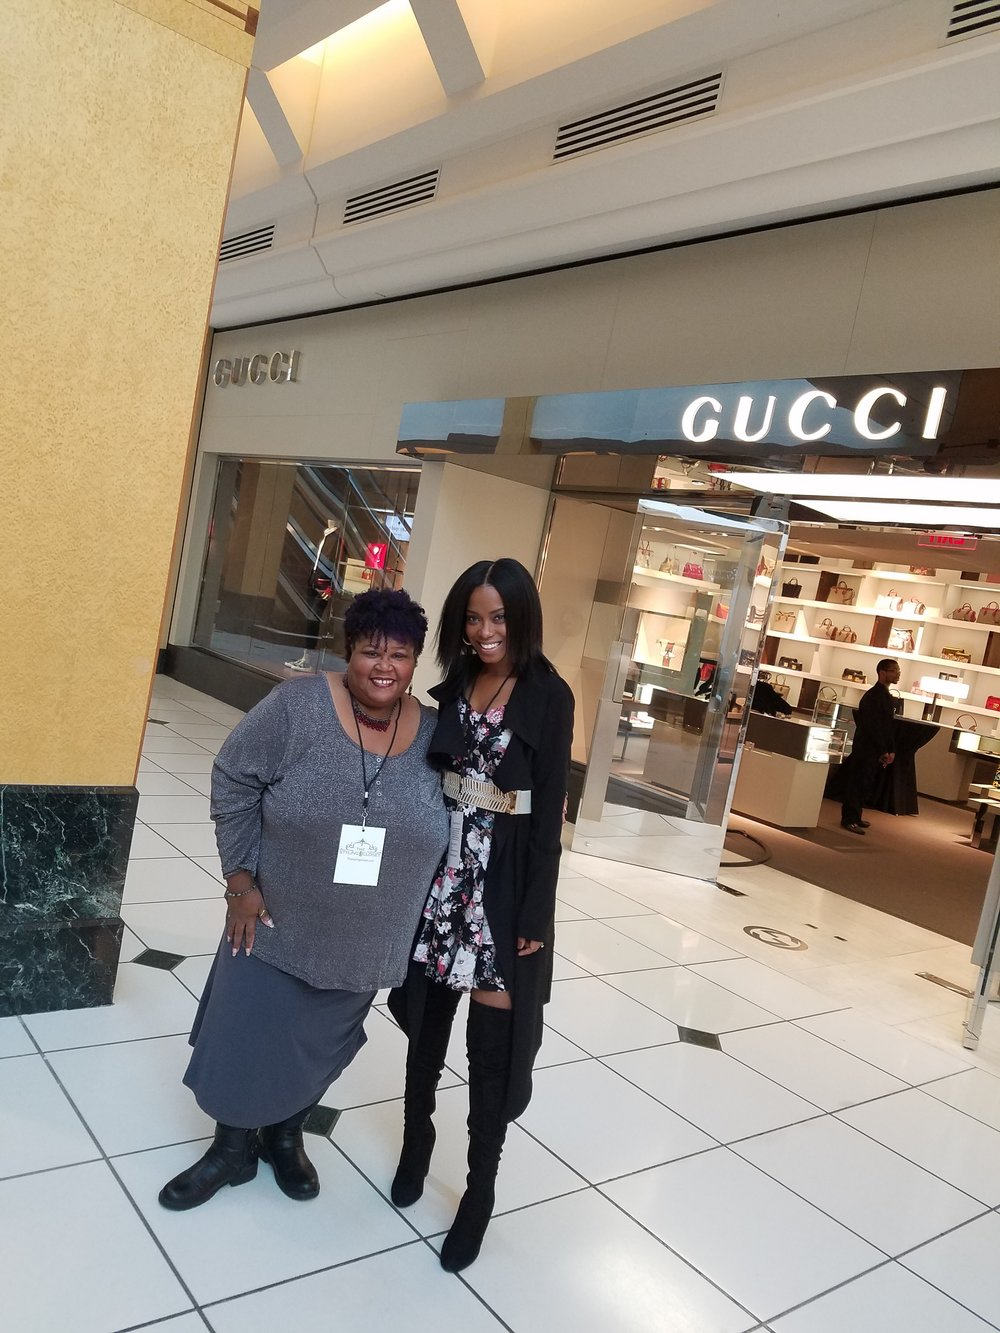 Head Blogger LisaB and The Styling Closet Owner, Latrice Delgado-Macon.